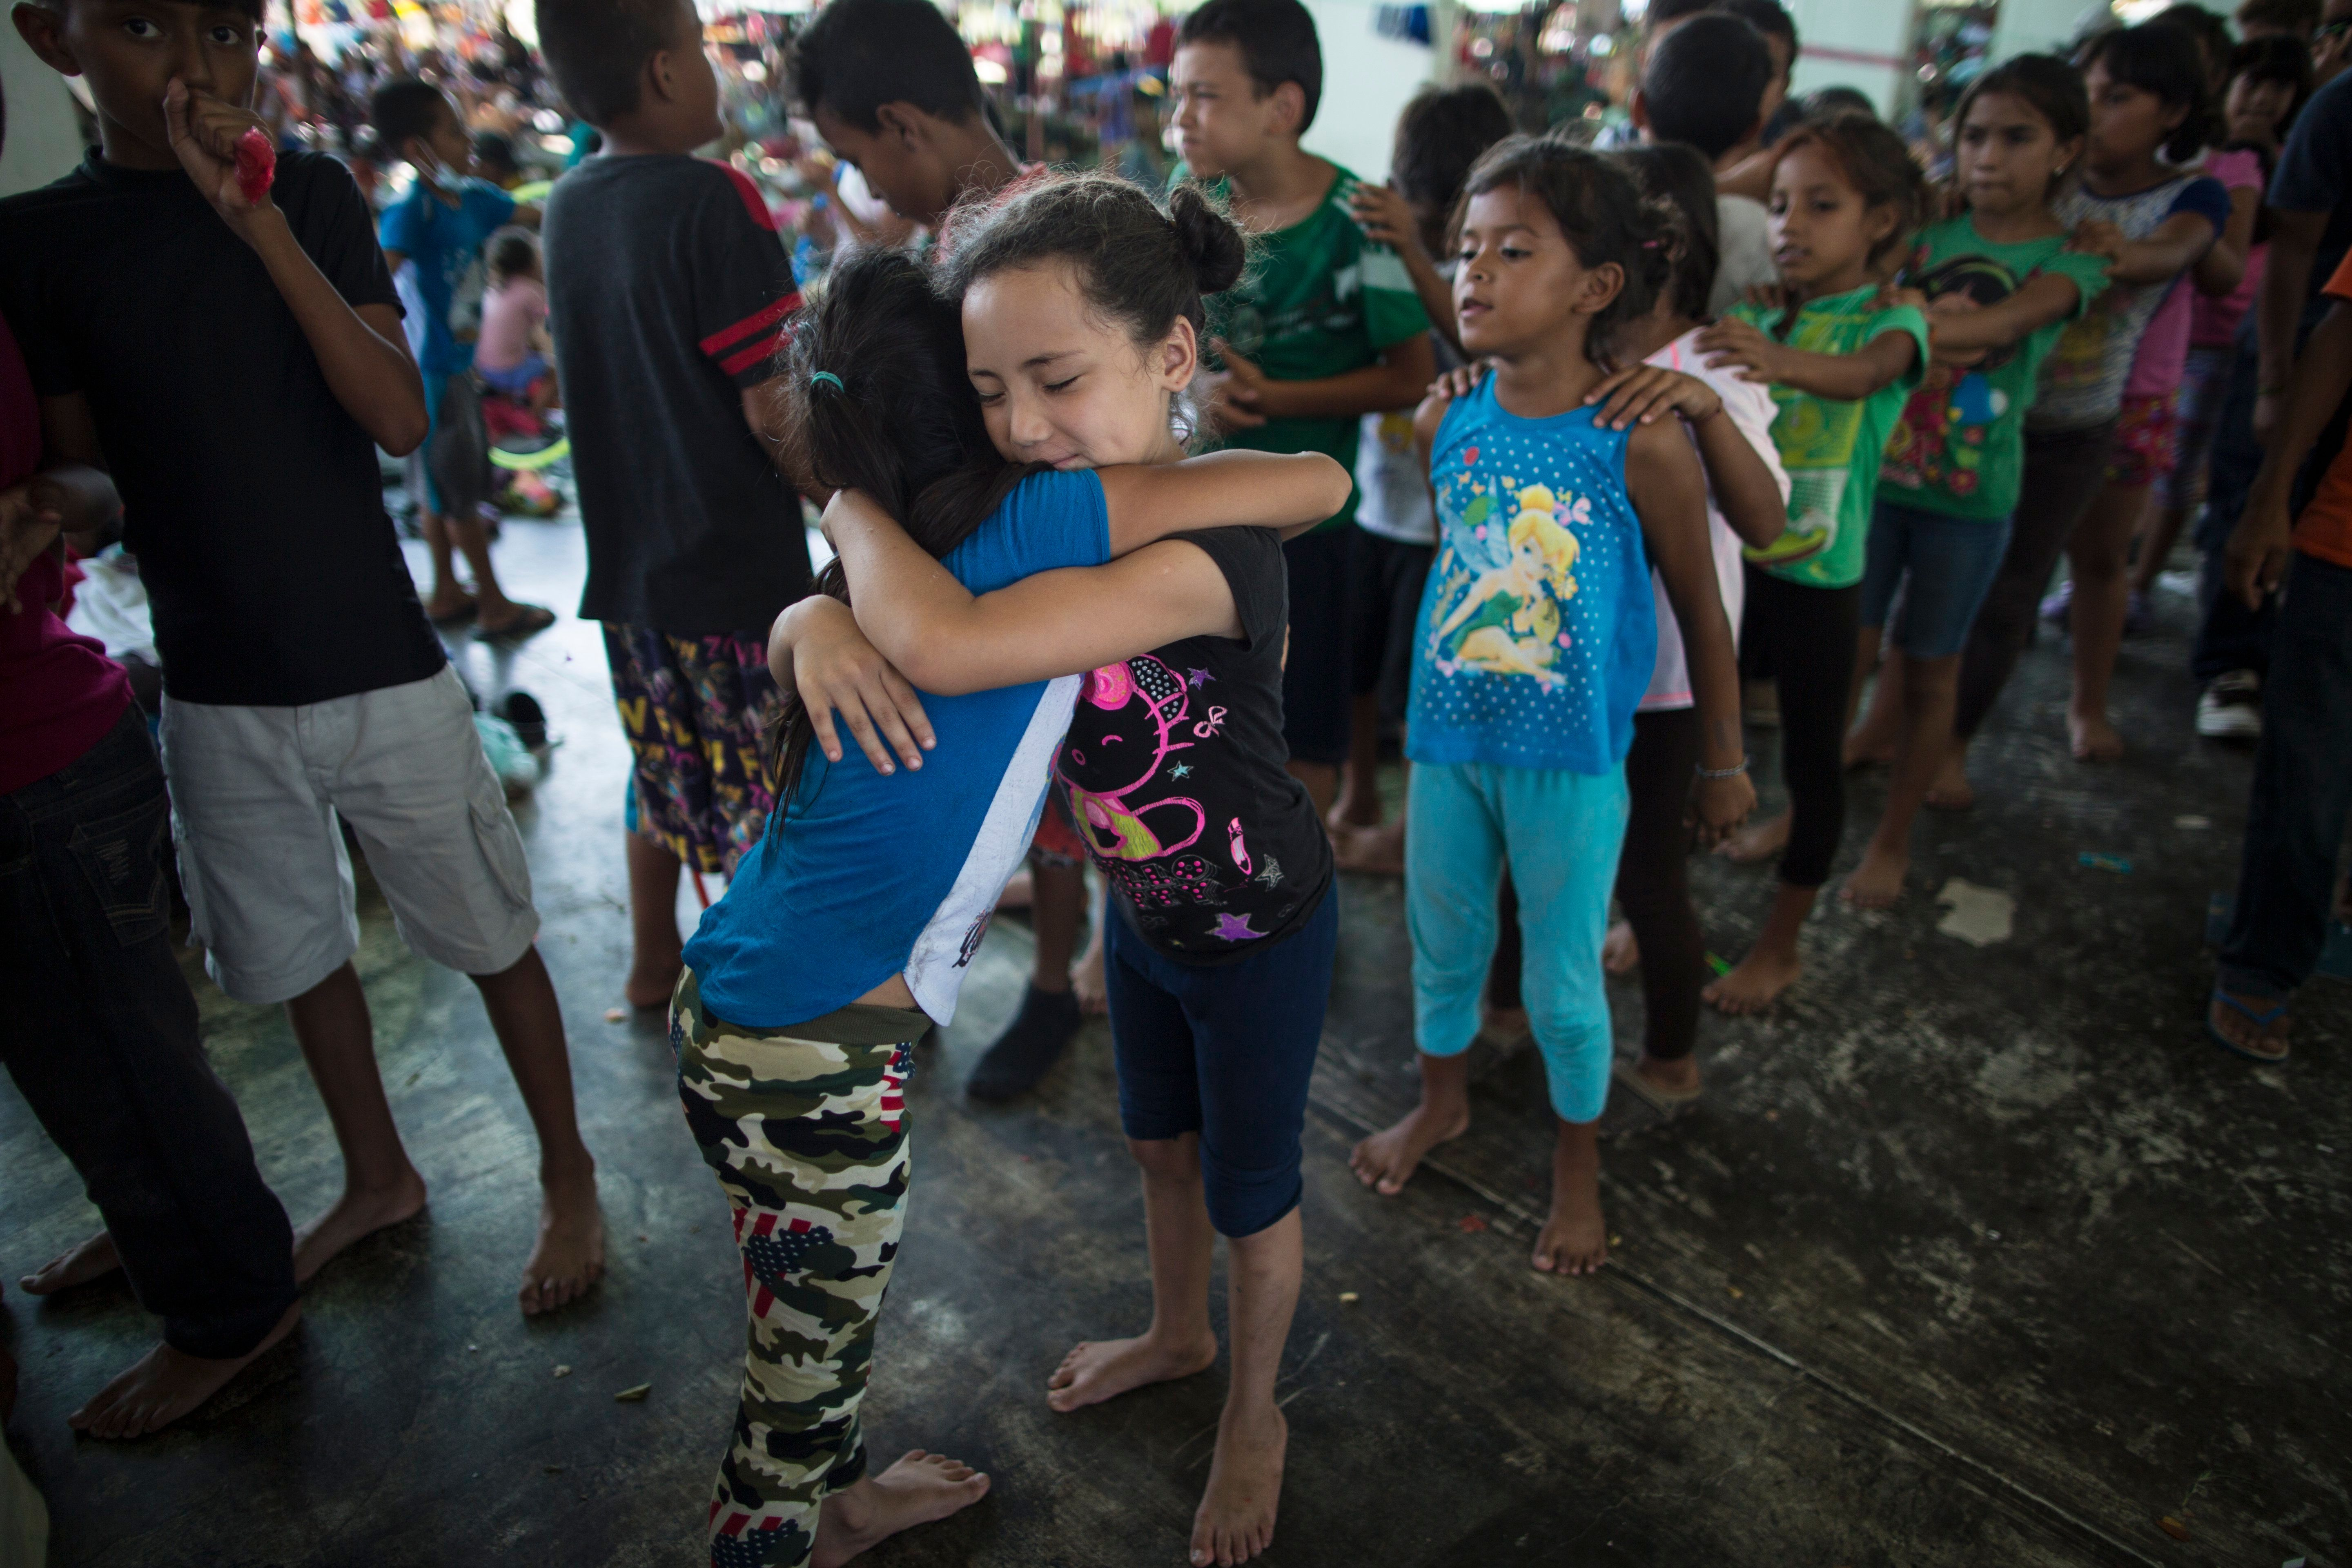 Honduran girls hug while waiting in line for a chance to play on the playground at a camp set up by a caravan of thousands of